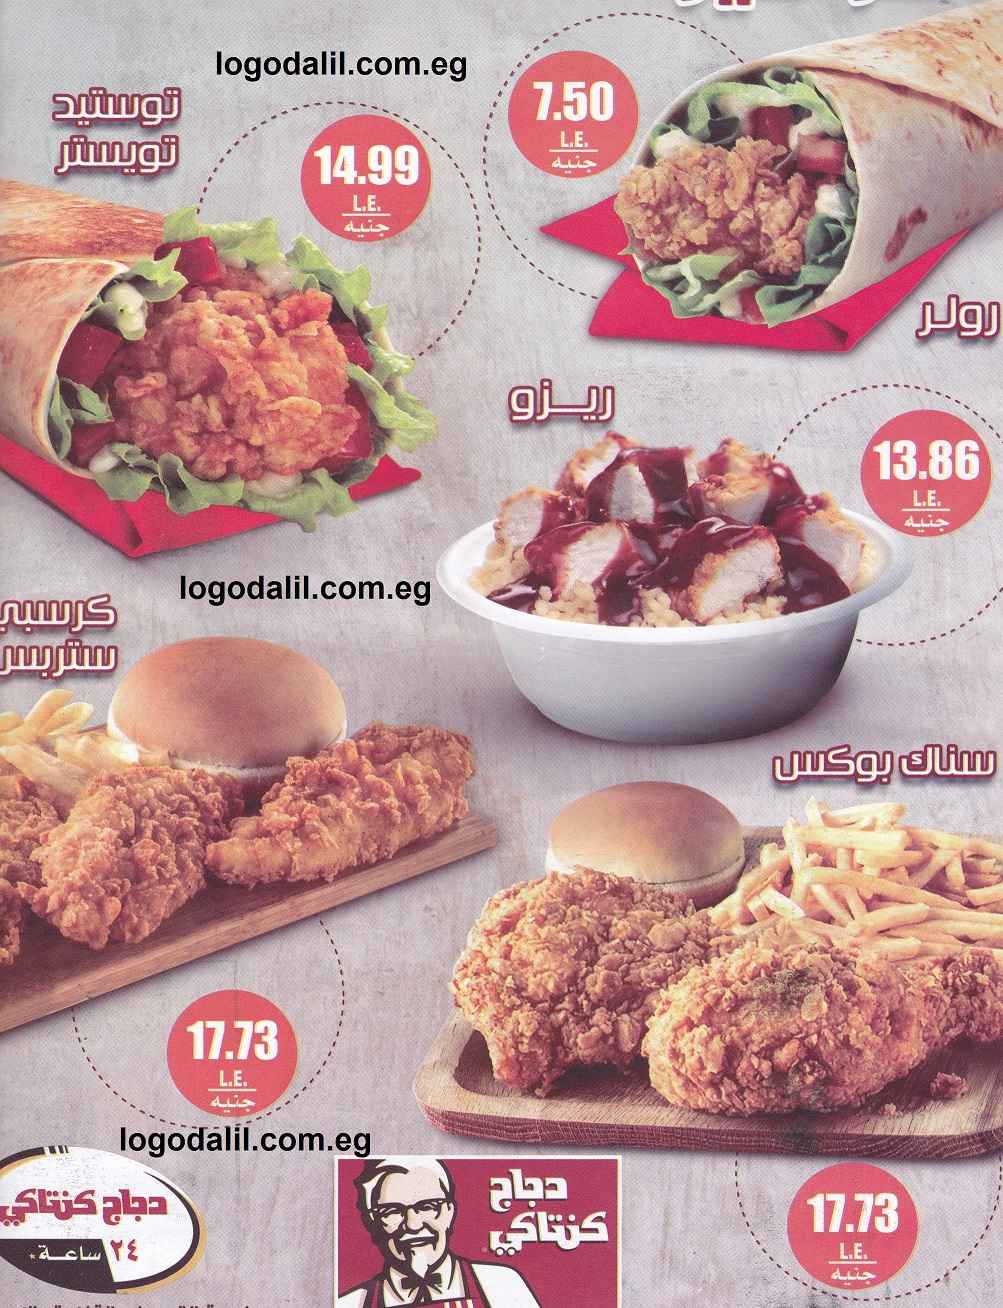 Items availability, prices, participation, delivery areas, charges and minimum purchase requirements for delivery may vary. ©KFC, Inc. All rights reserved.